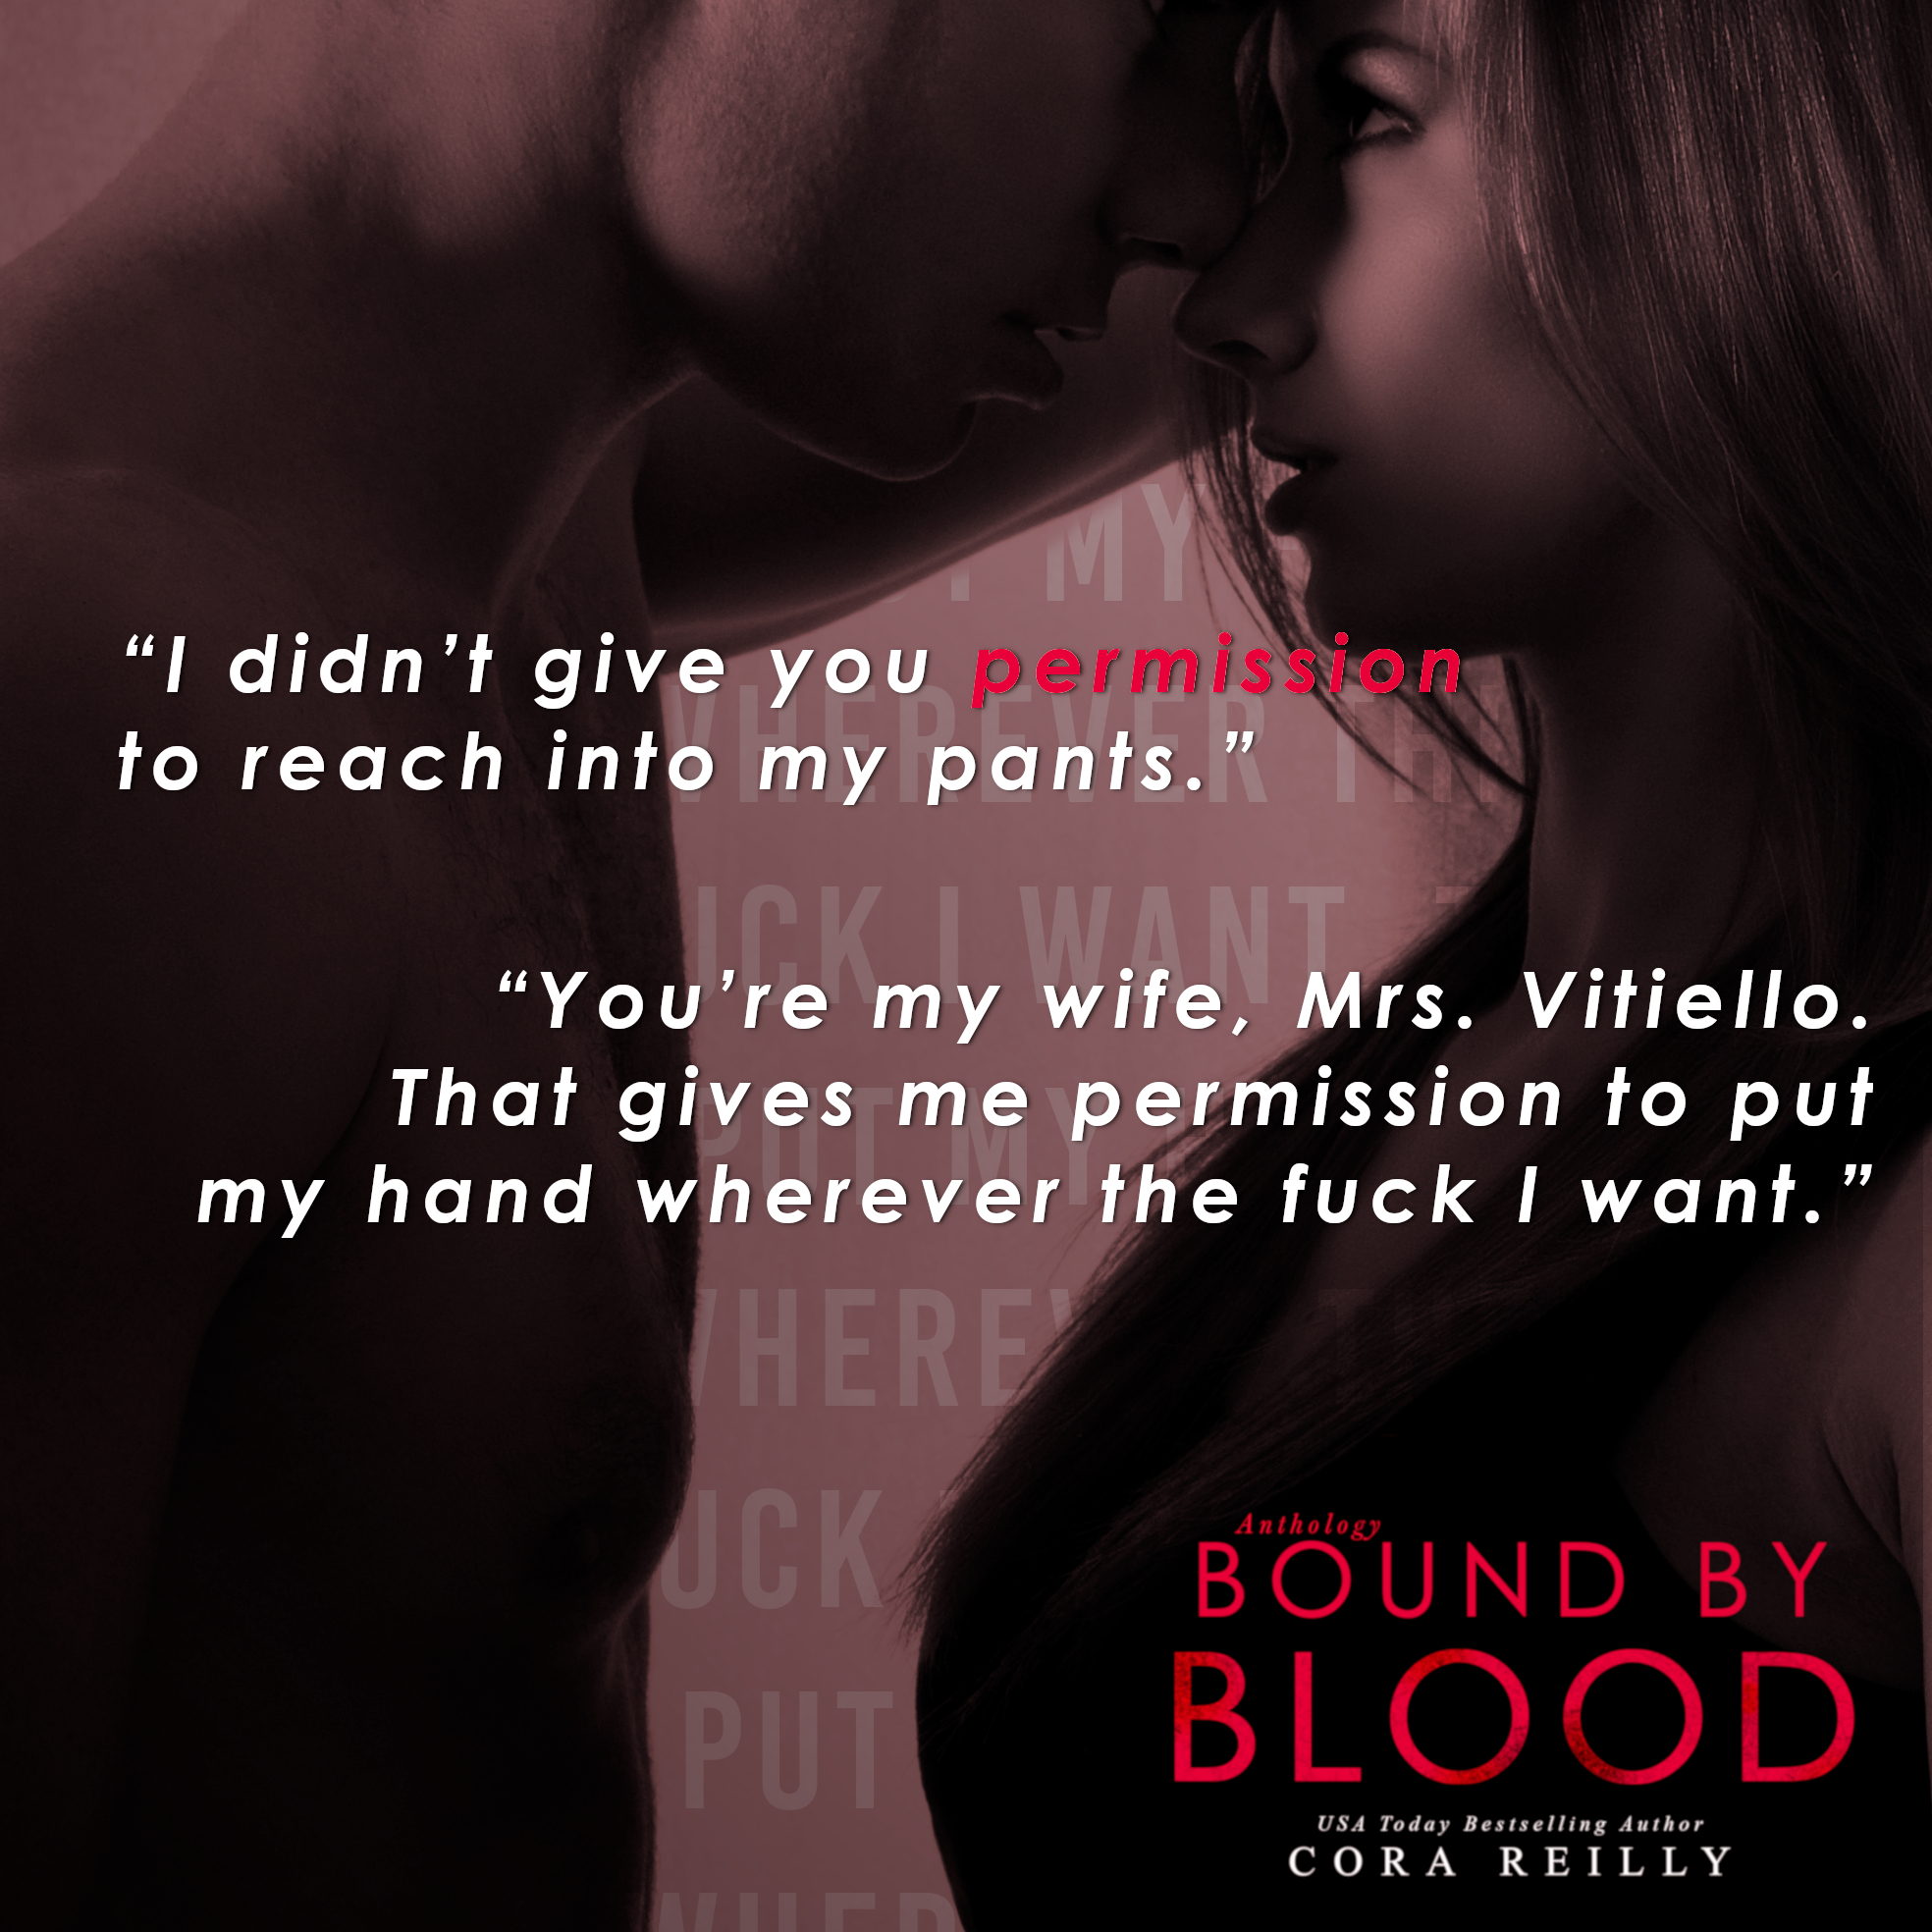 October 15th BOUND BY BLOOD TEASER